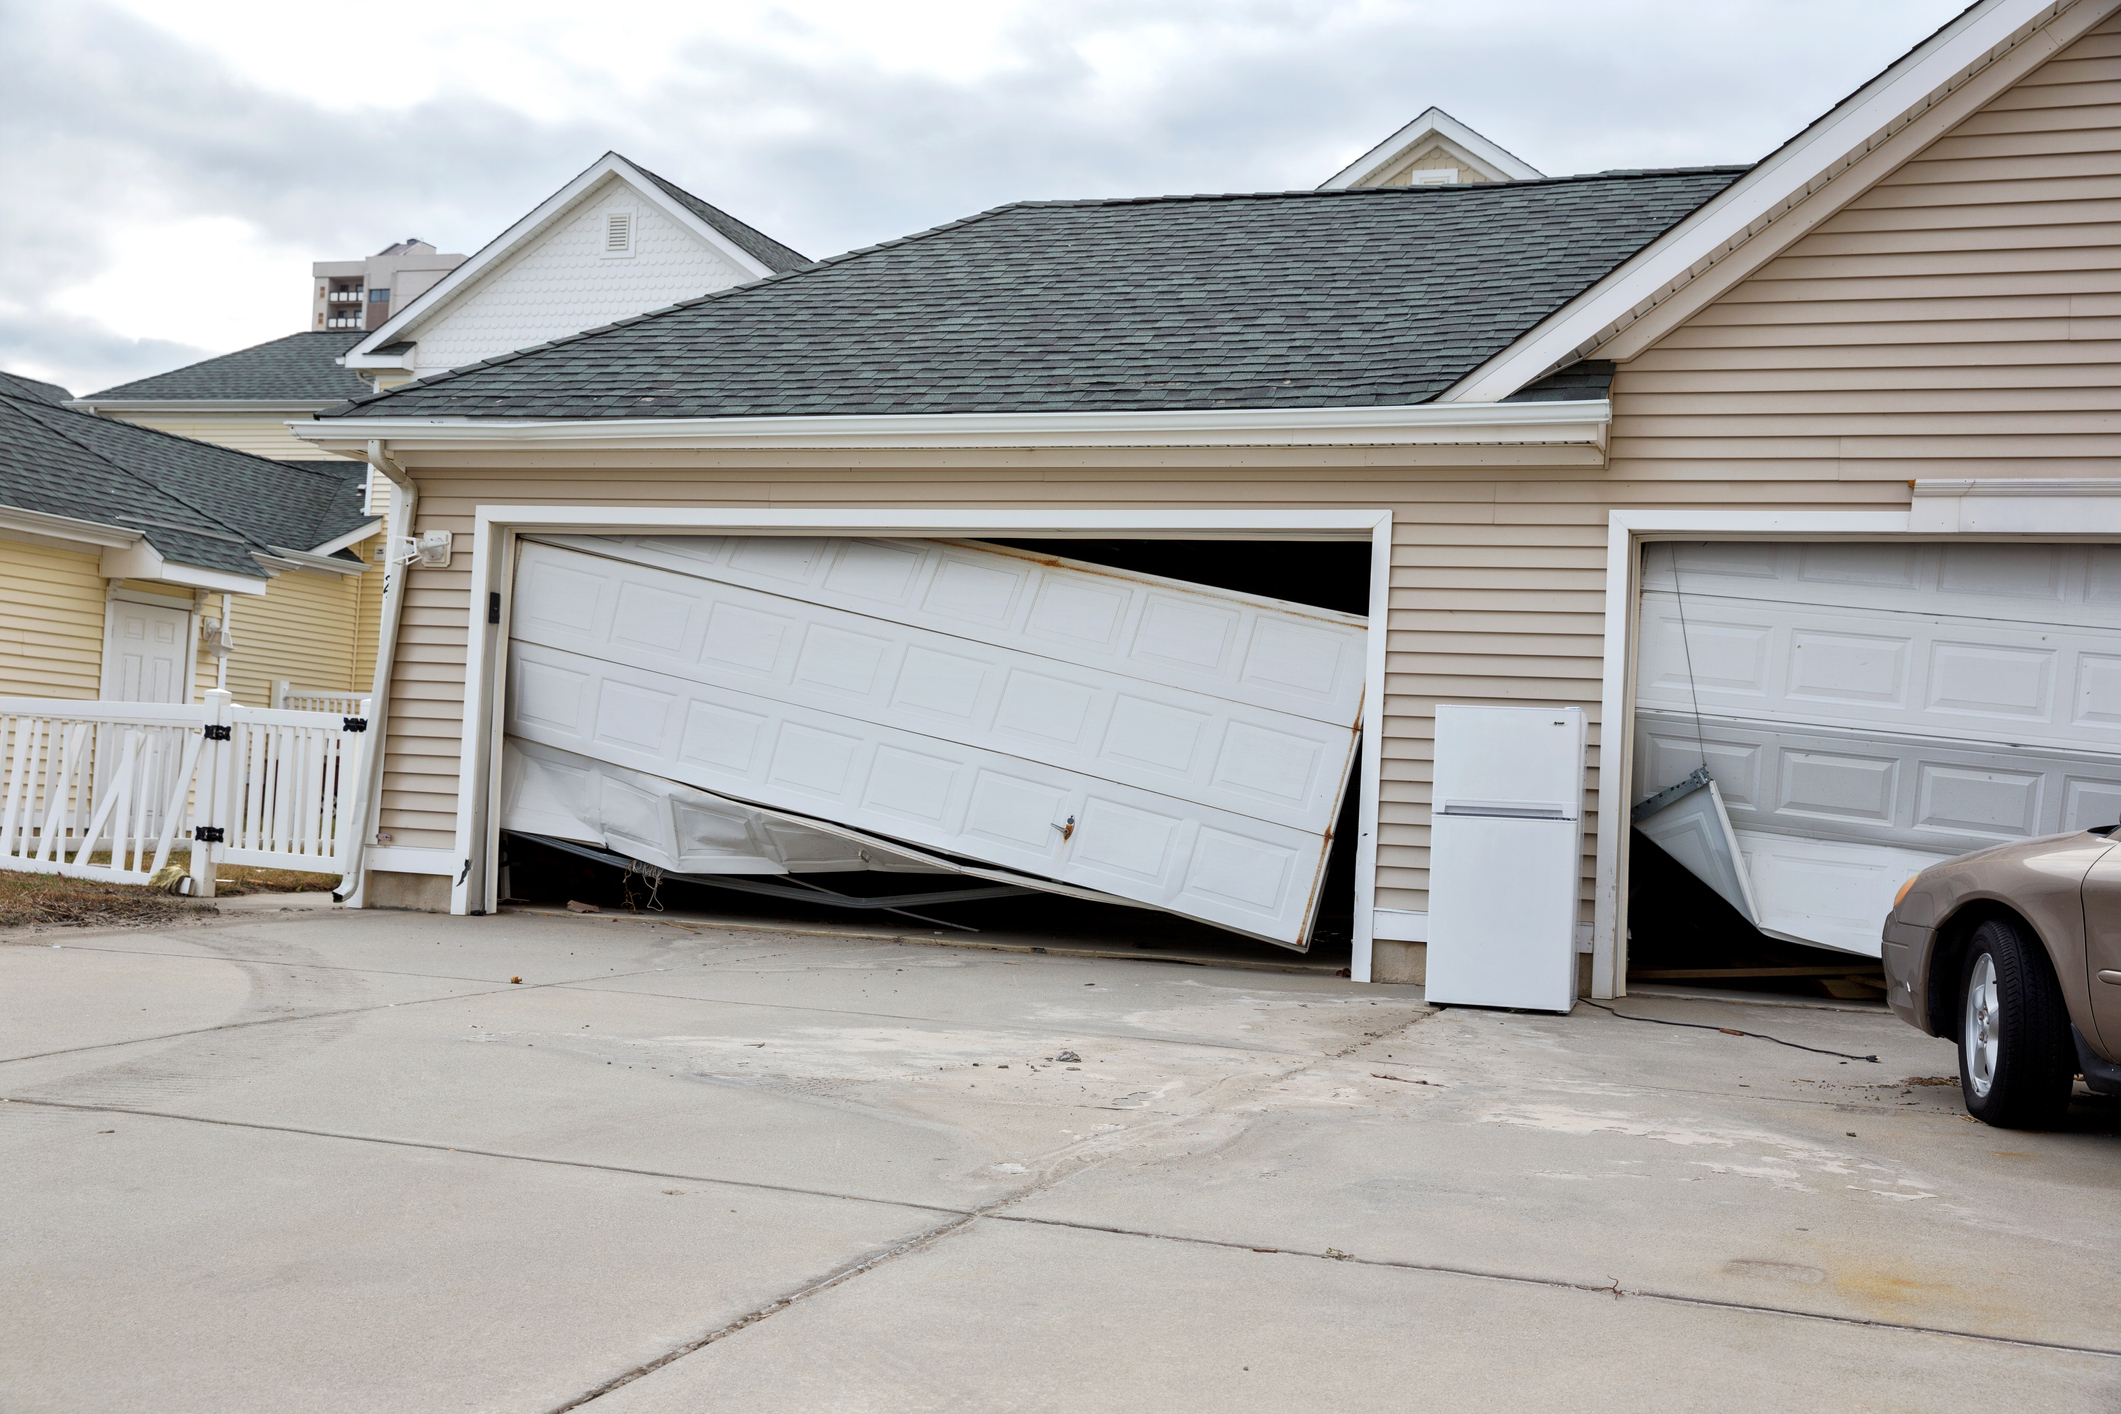 Hurricane damage to garage door